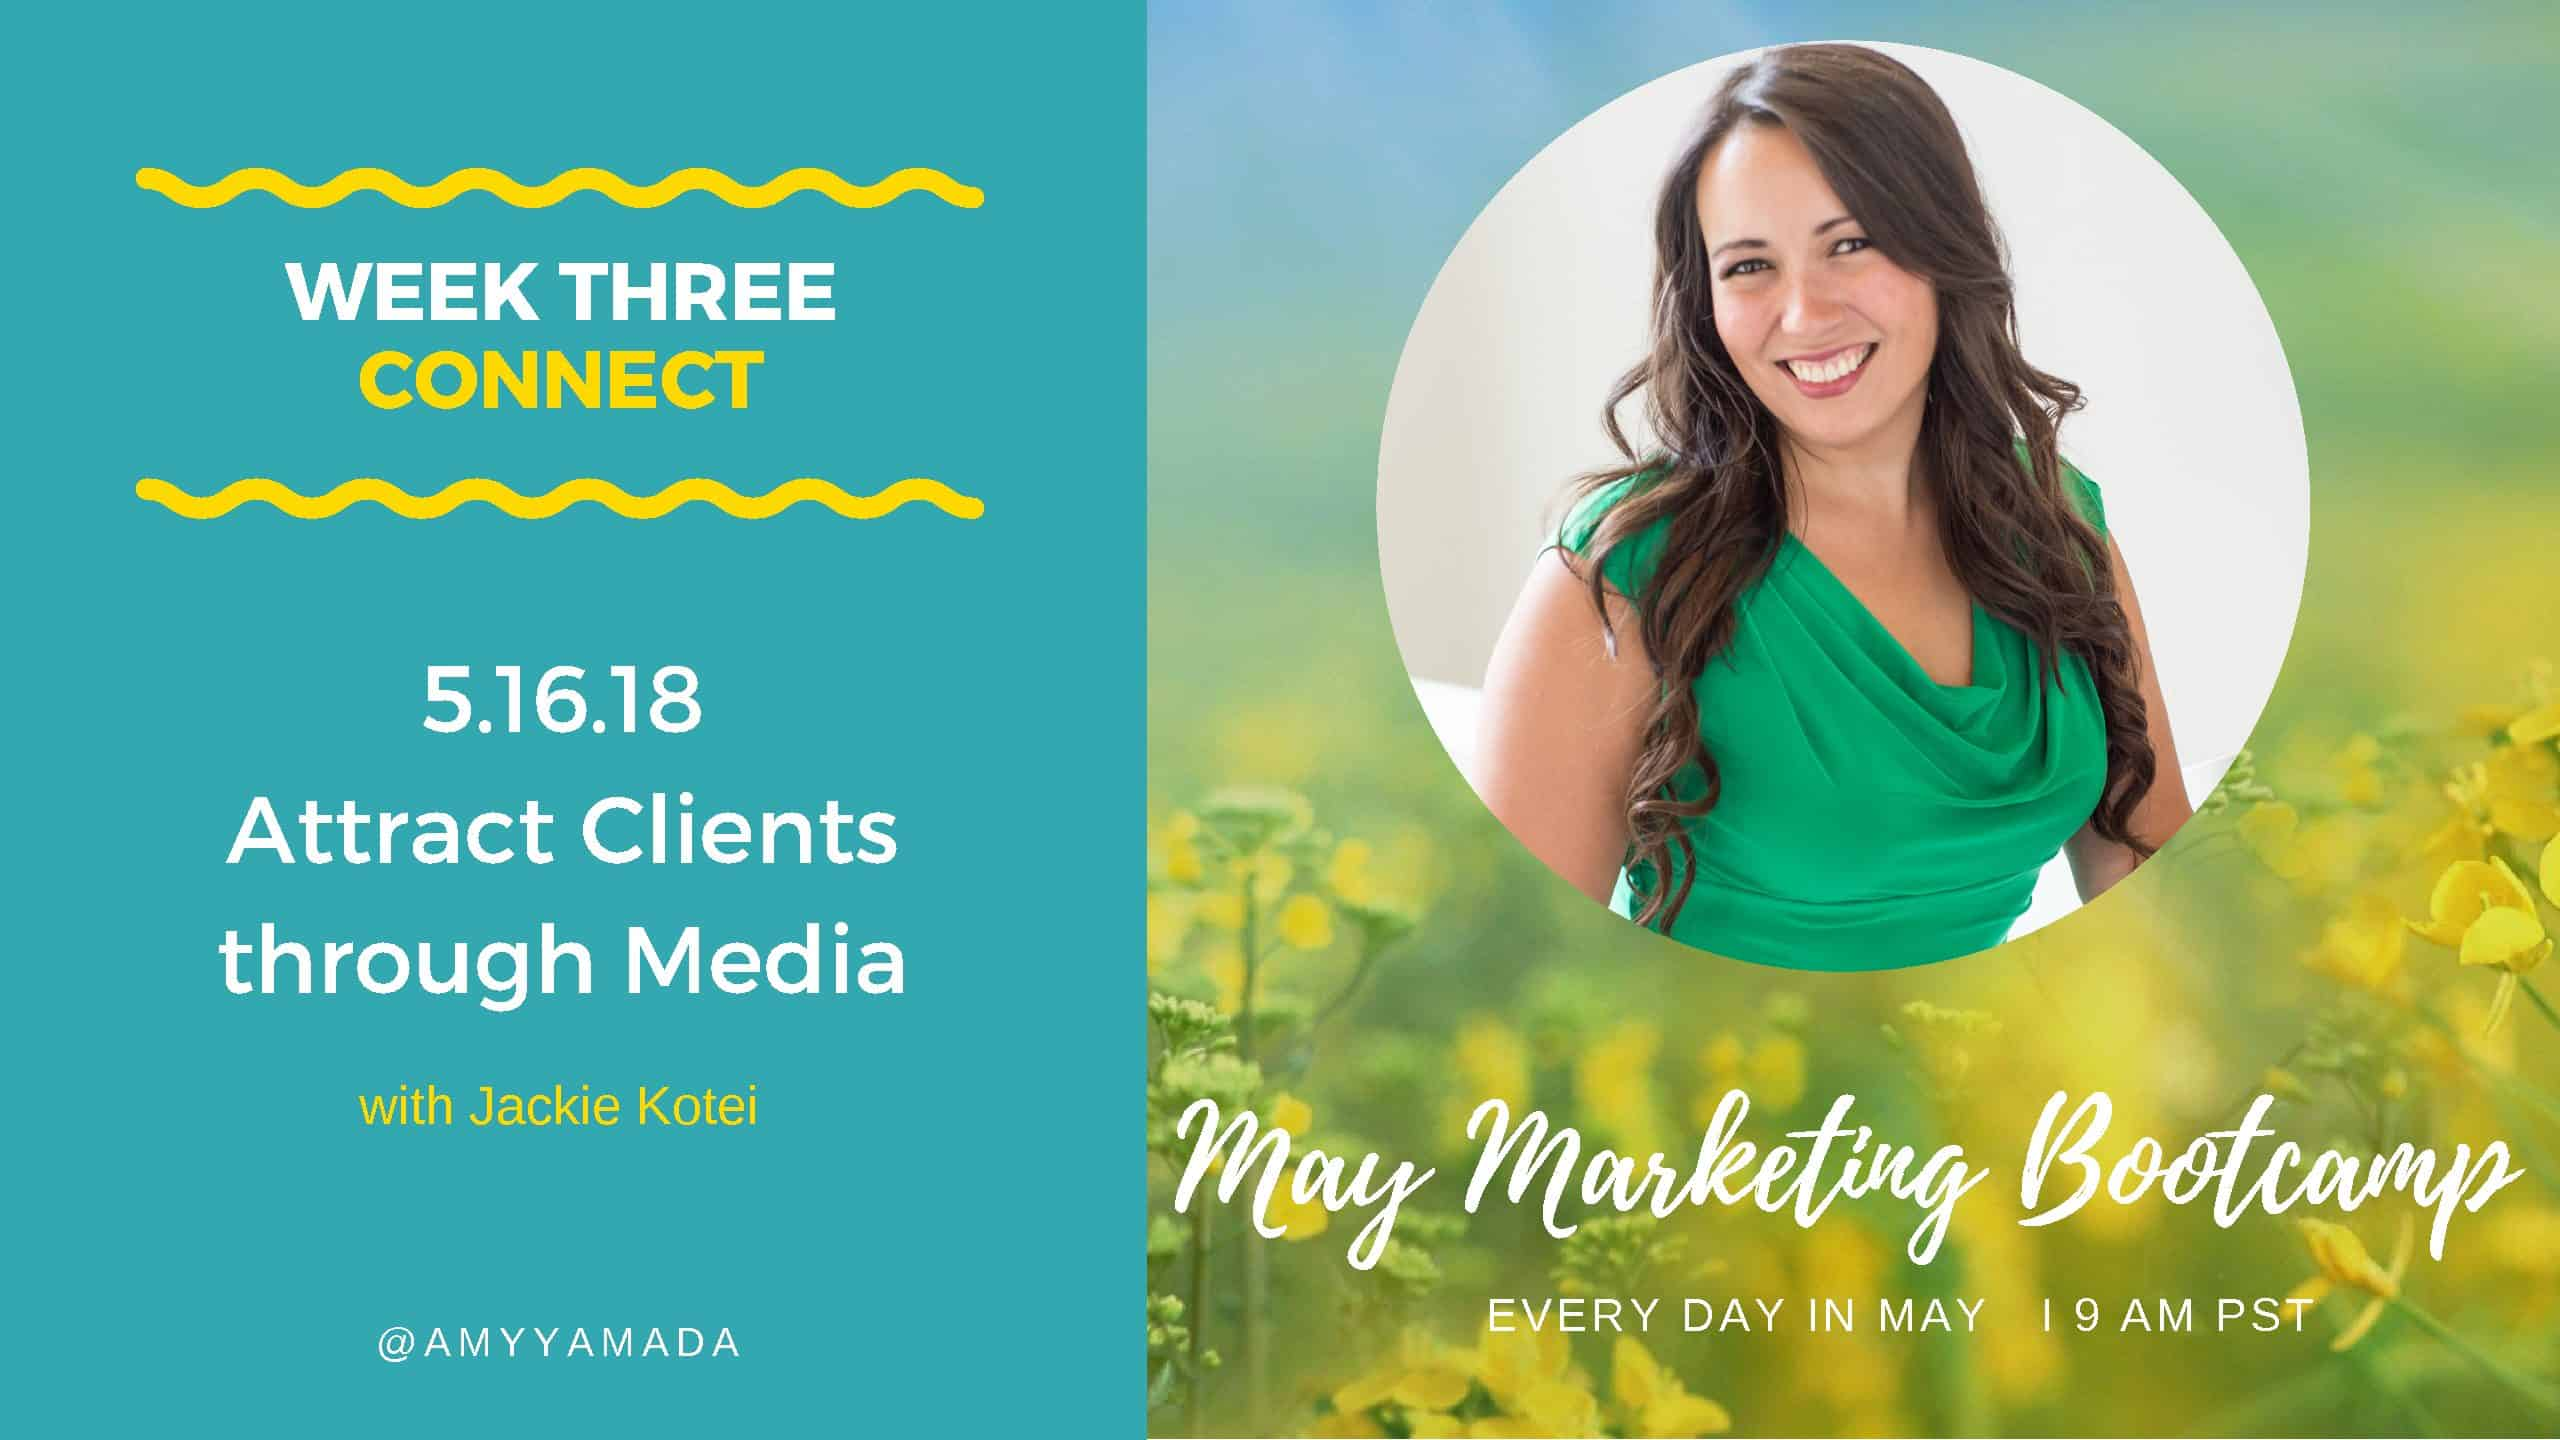 Attract Clients through Media – with Jackie Kotei